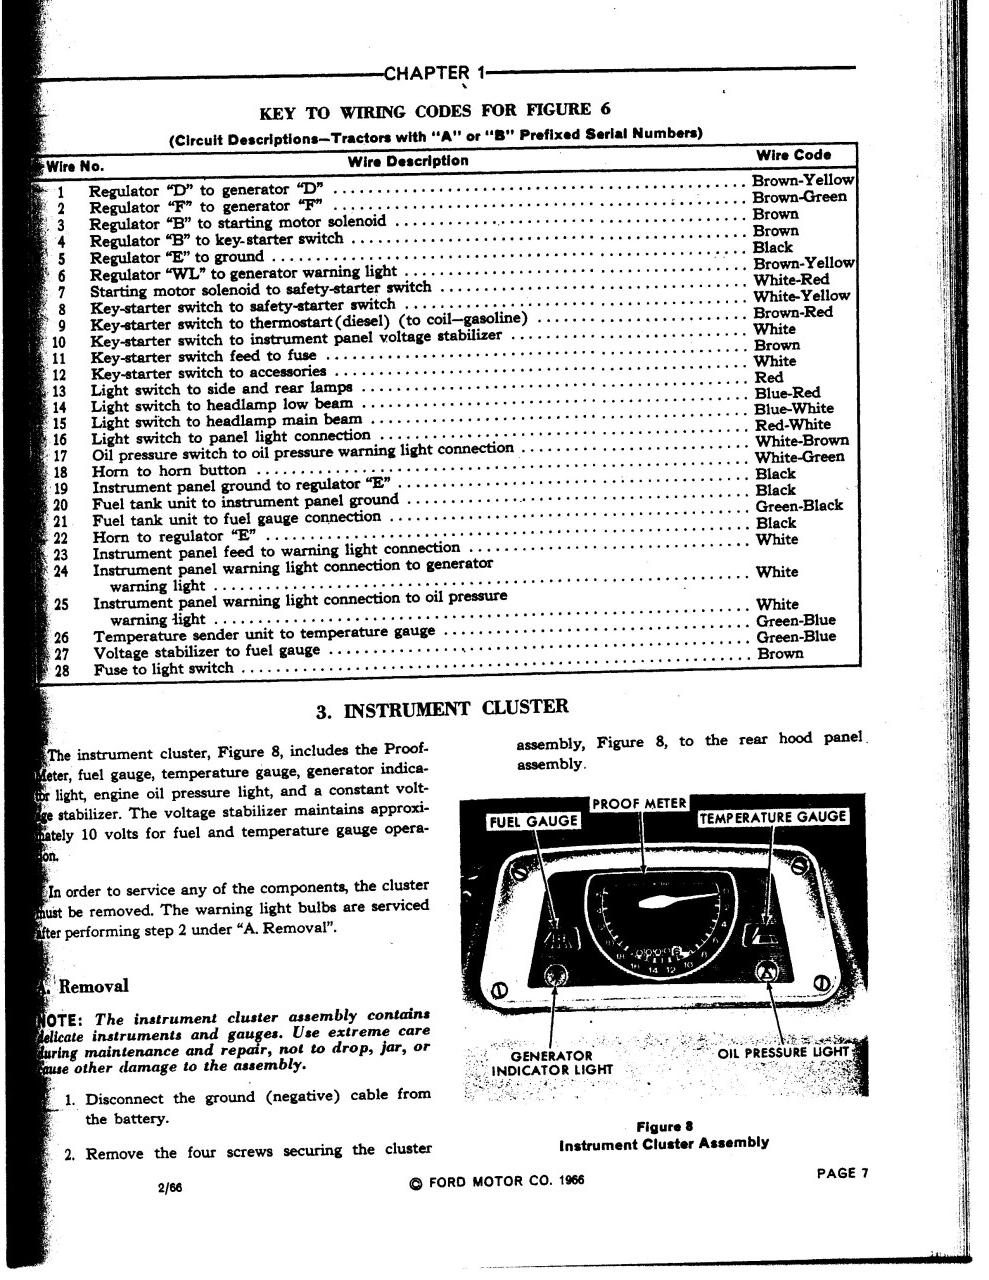 ford 3000 instrument cluster wiring diagram - wiring diagram all pale-large  - pale-large.huevoprint.it  huevoprint